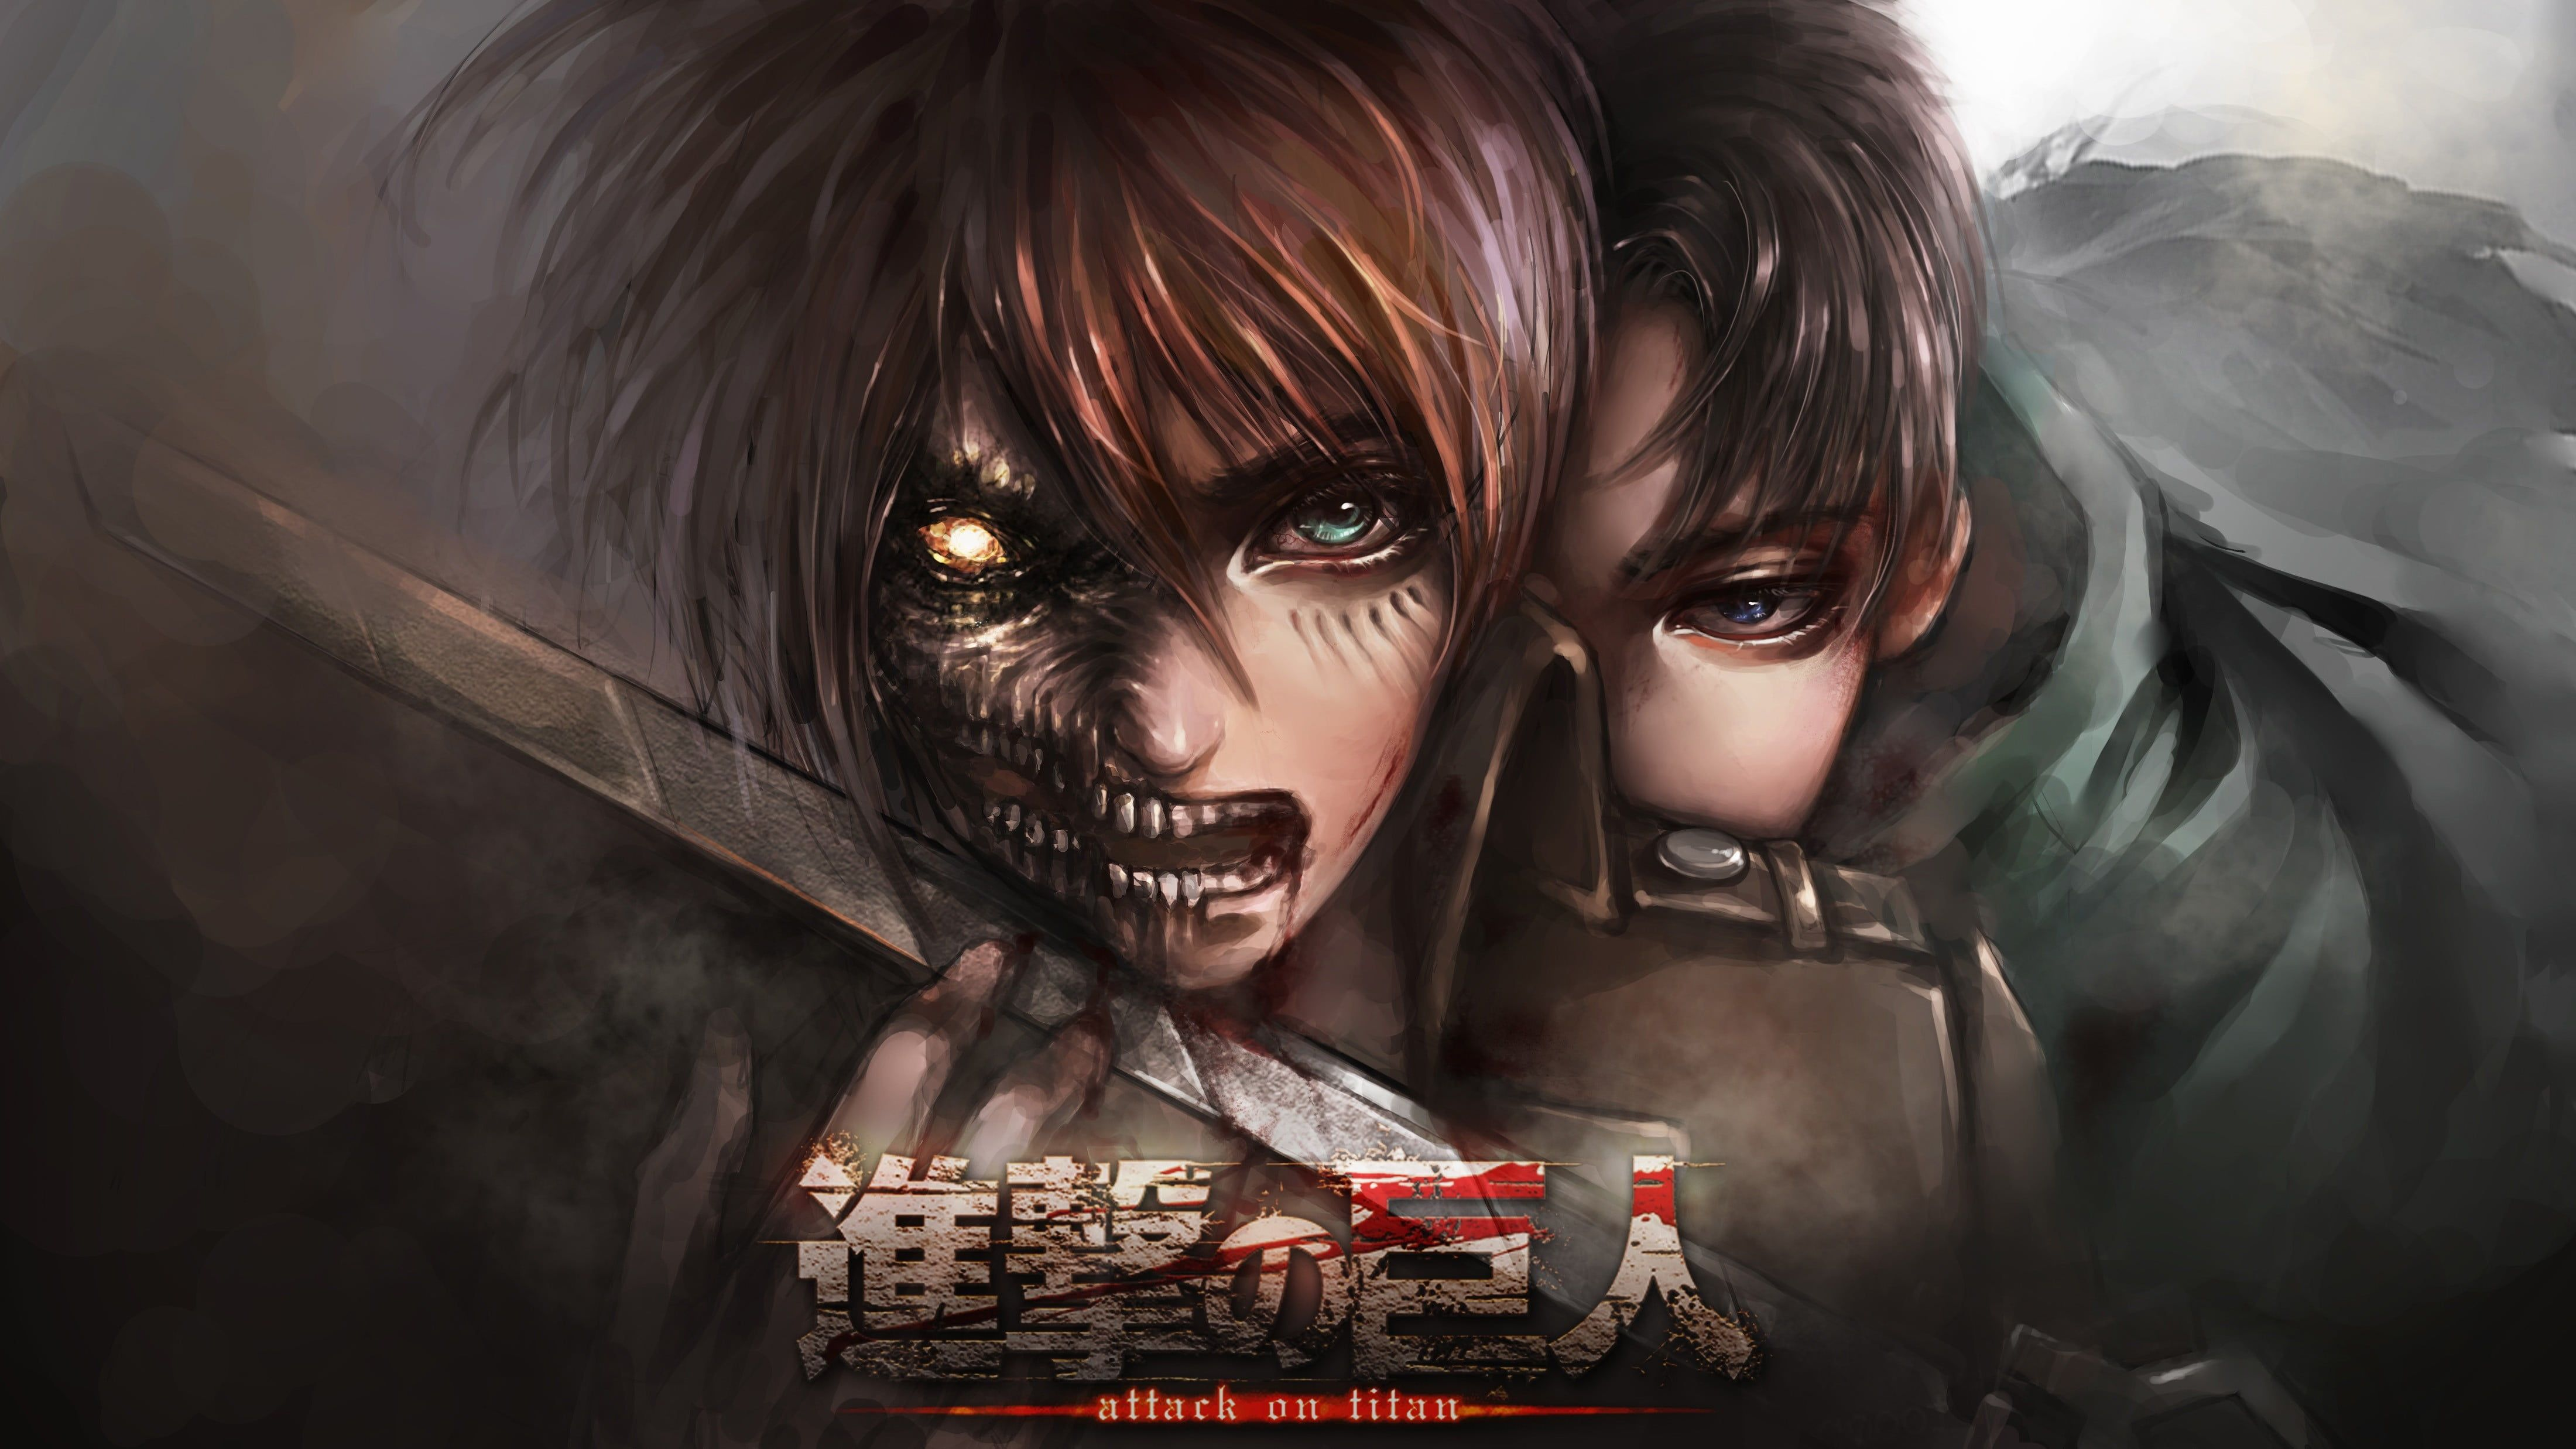 Advertisement platforms categories 0.1042015 user rating6 1/2 zip into the world of the popular ani. Attack On Titan Season 4 Desktop Wallpapers - Wallpaper Cave